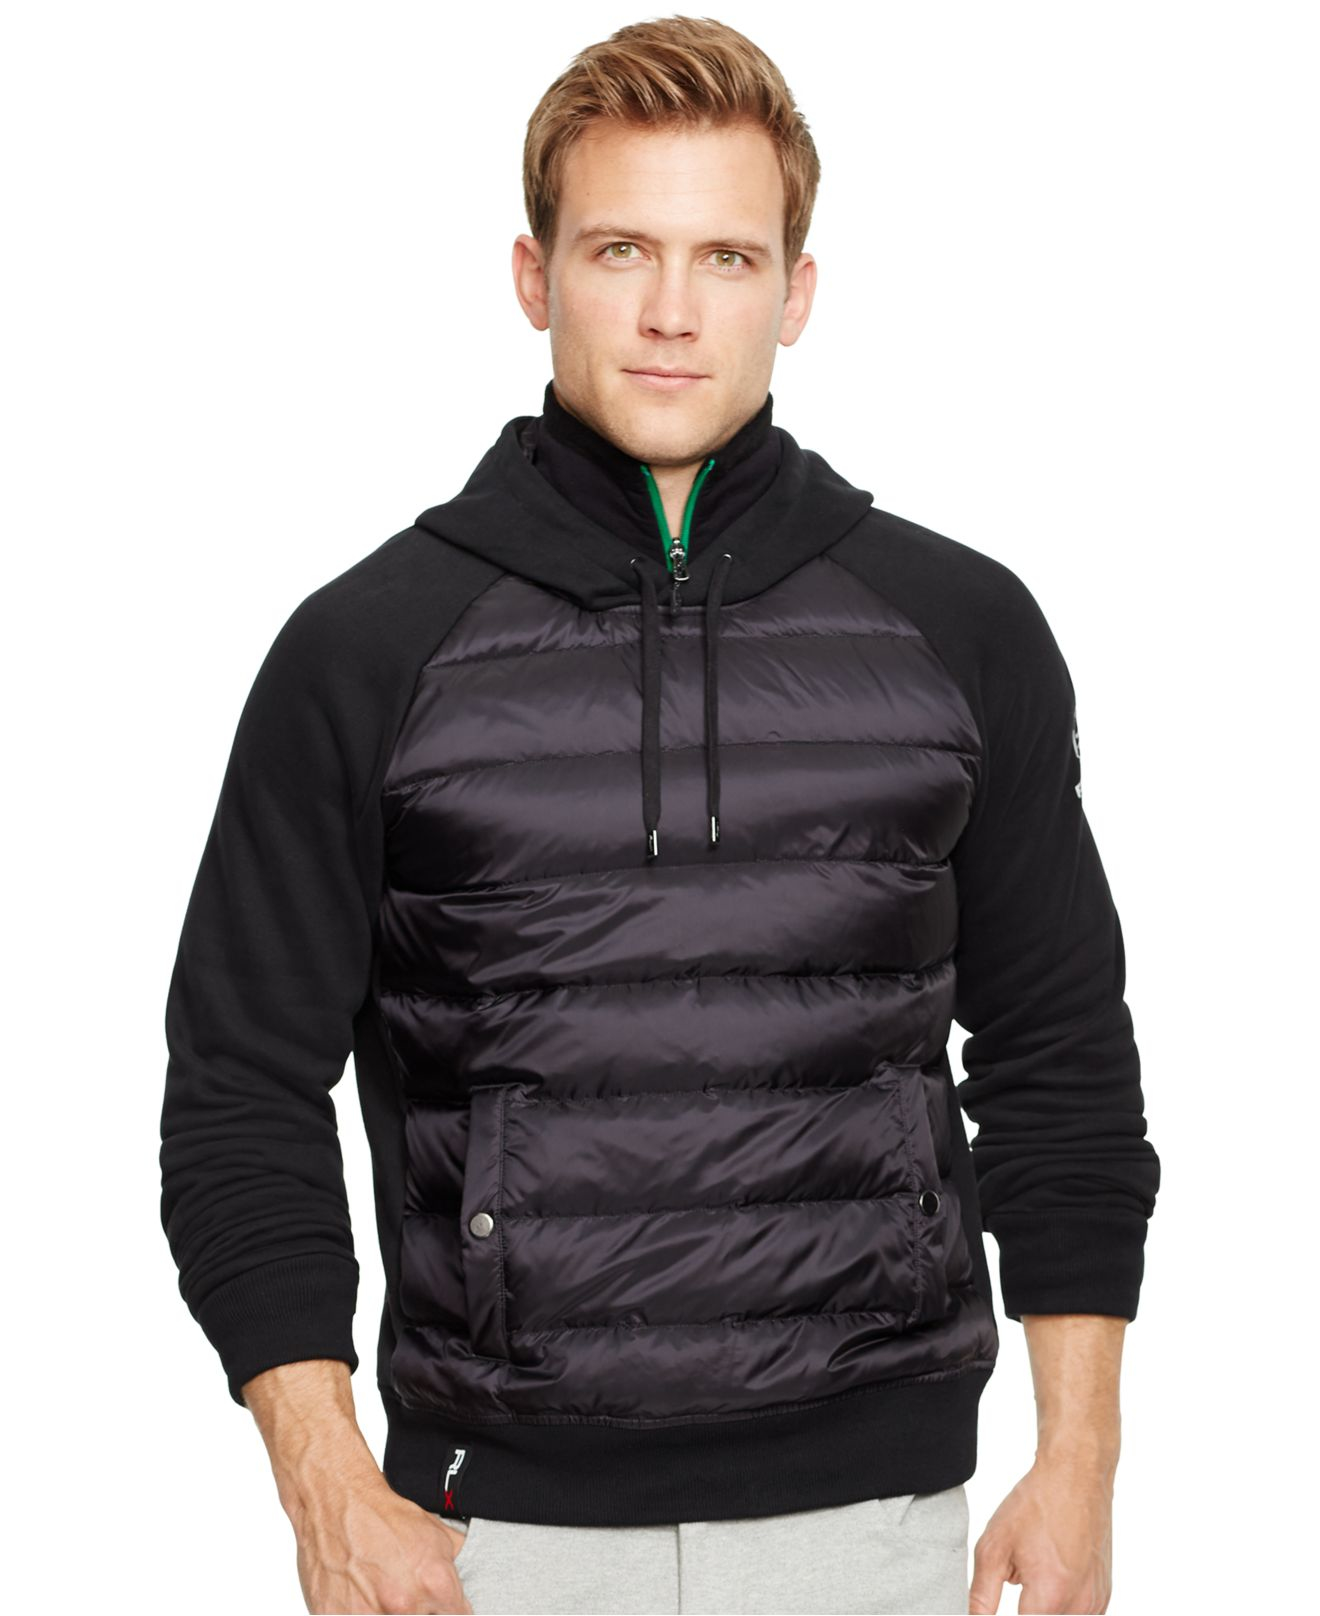 polo ralph lauren rlx quilted fleece hoodie in black for men lyst. Black Bedroom Furniture Sets. Home Design Ideas